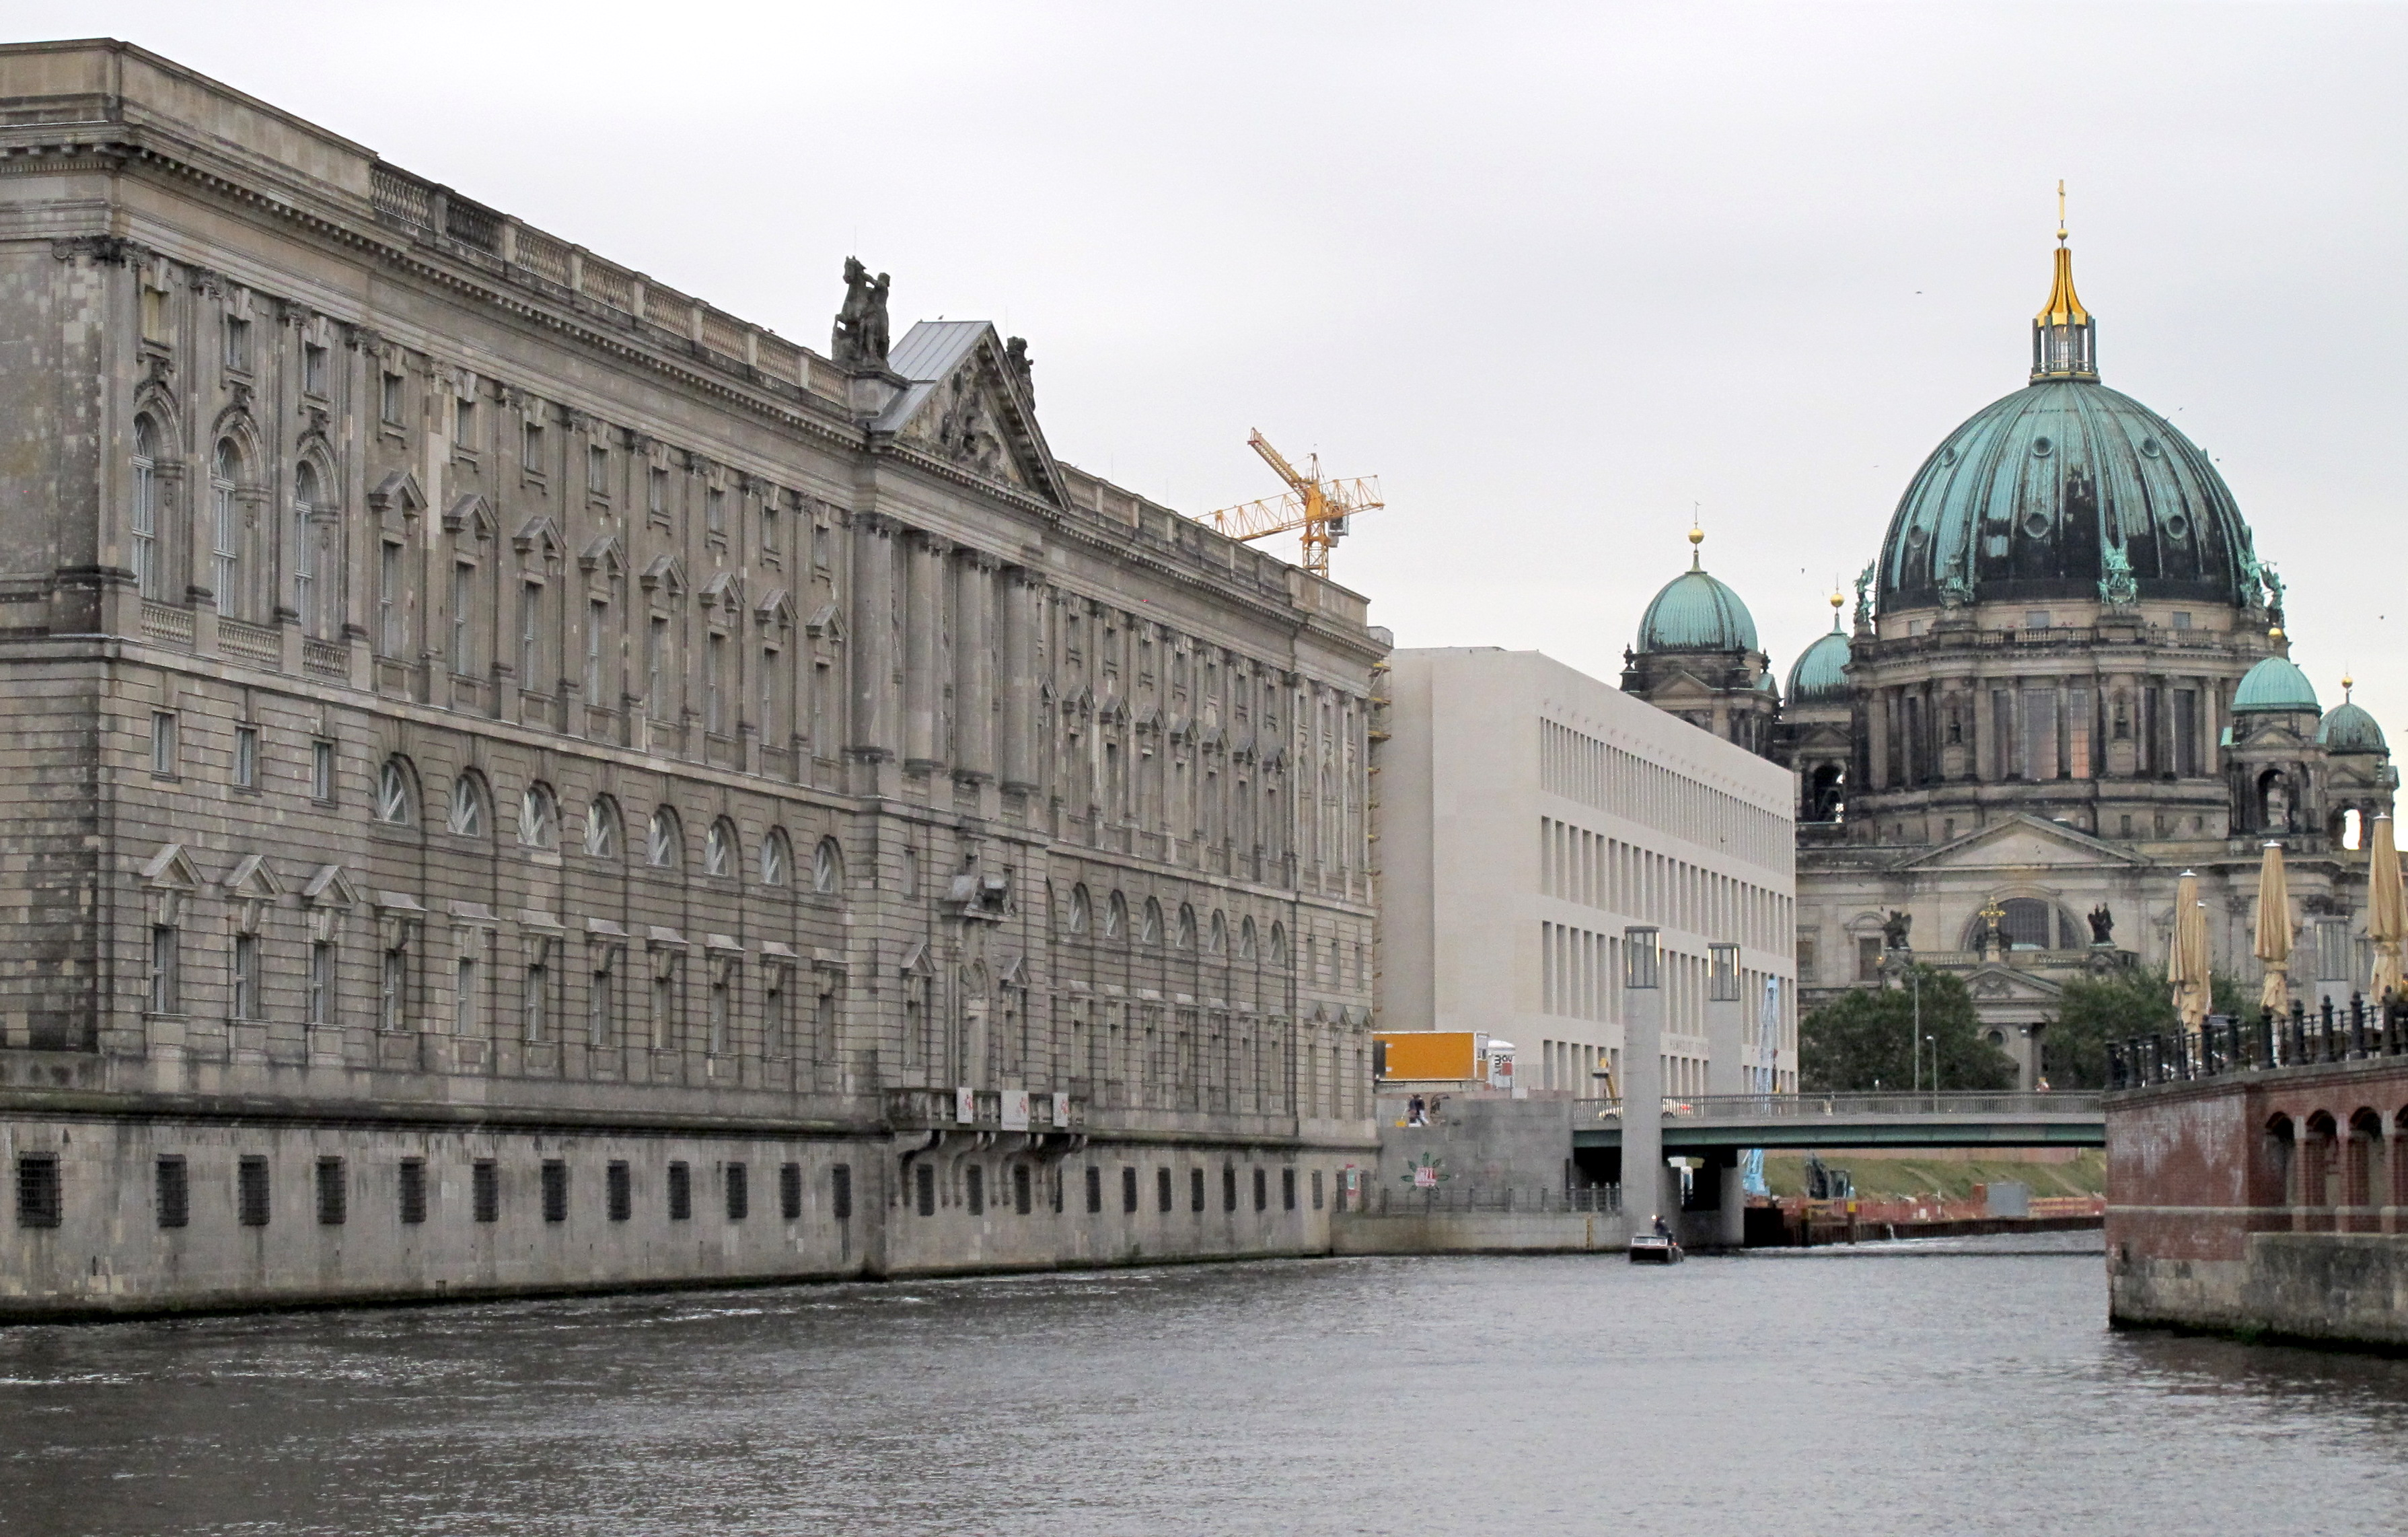 Berlin - view from the river Spree. Photo: Somaya Langley